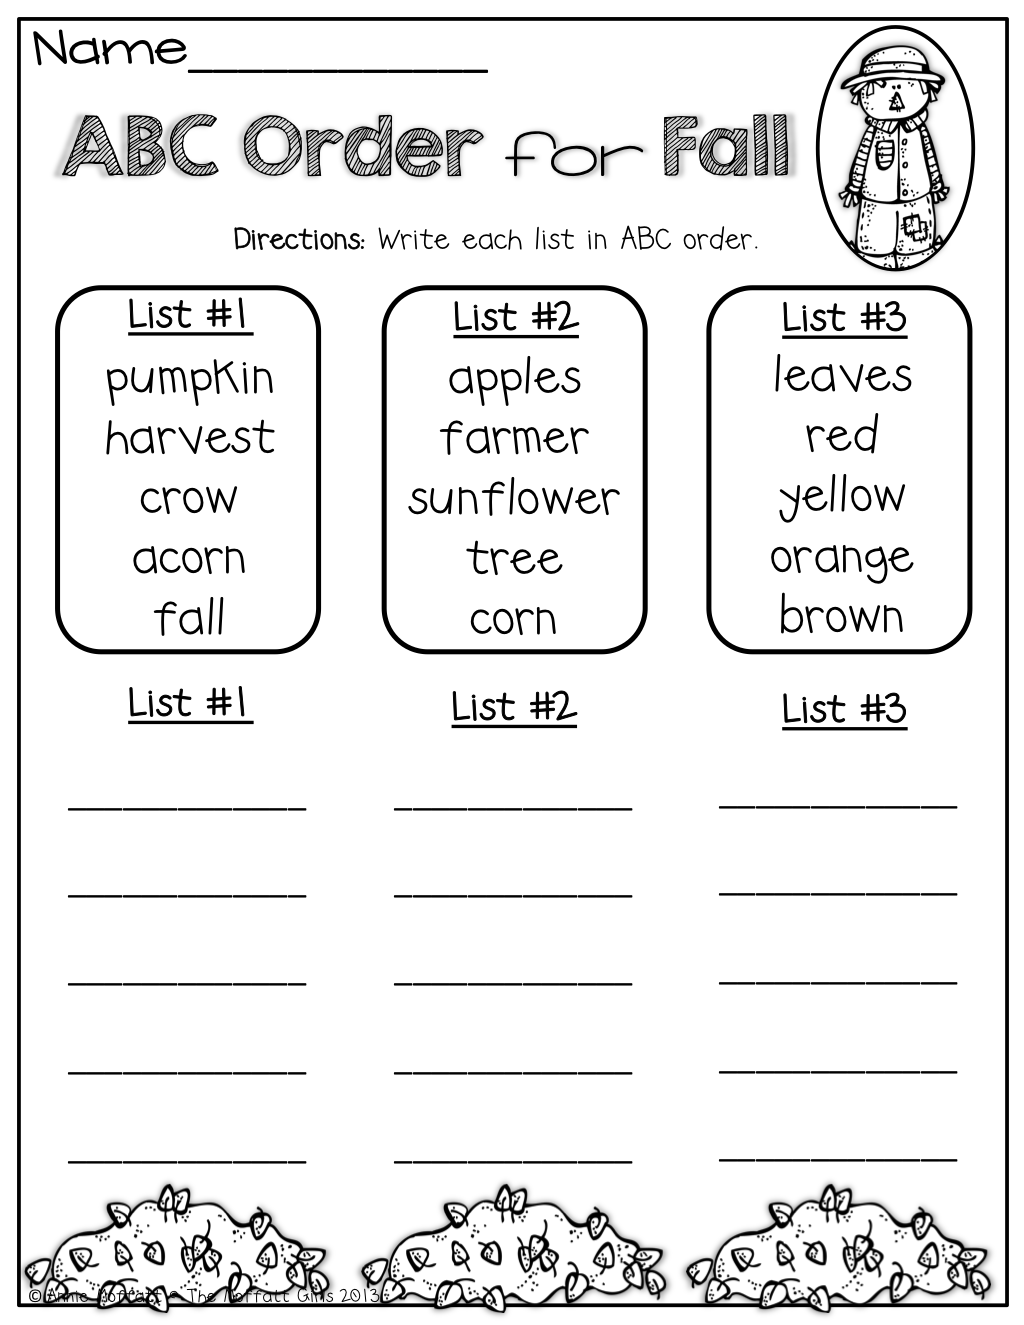 Abc Order For Fall Write Words On Popsicle Sticks For